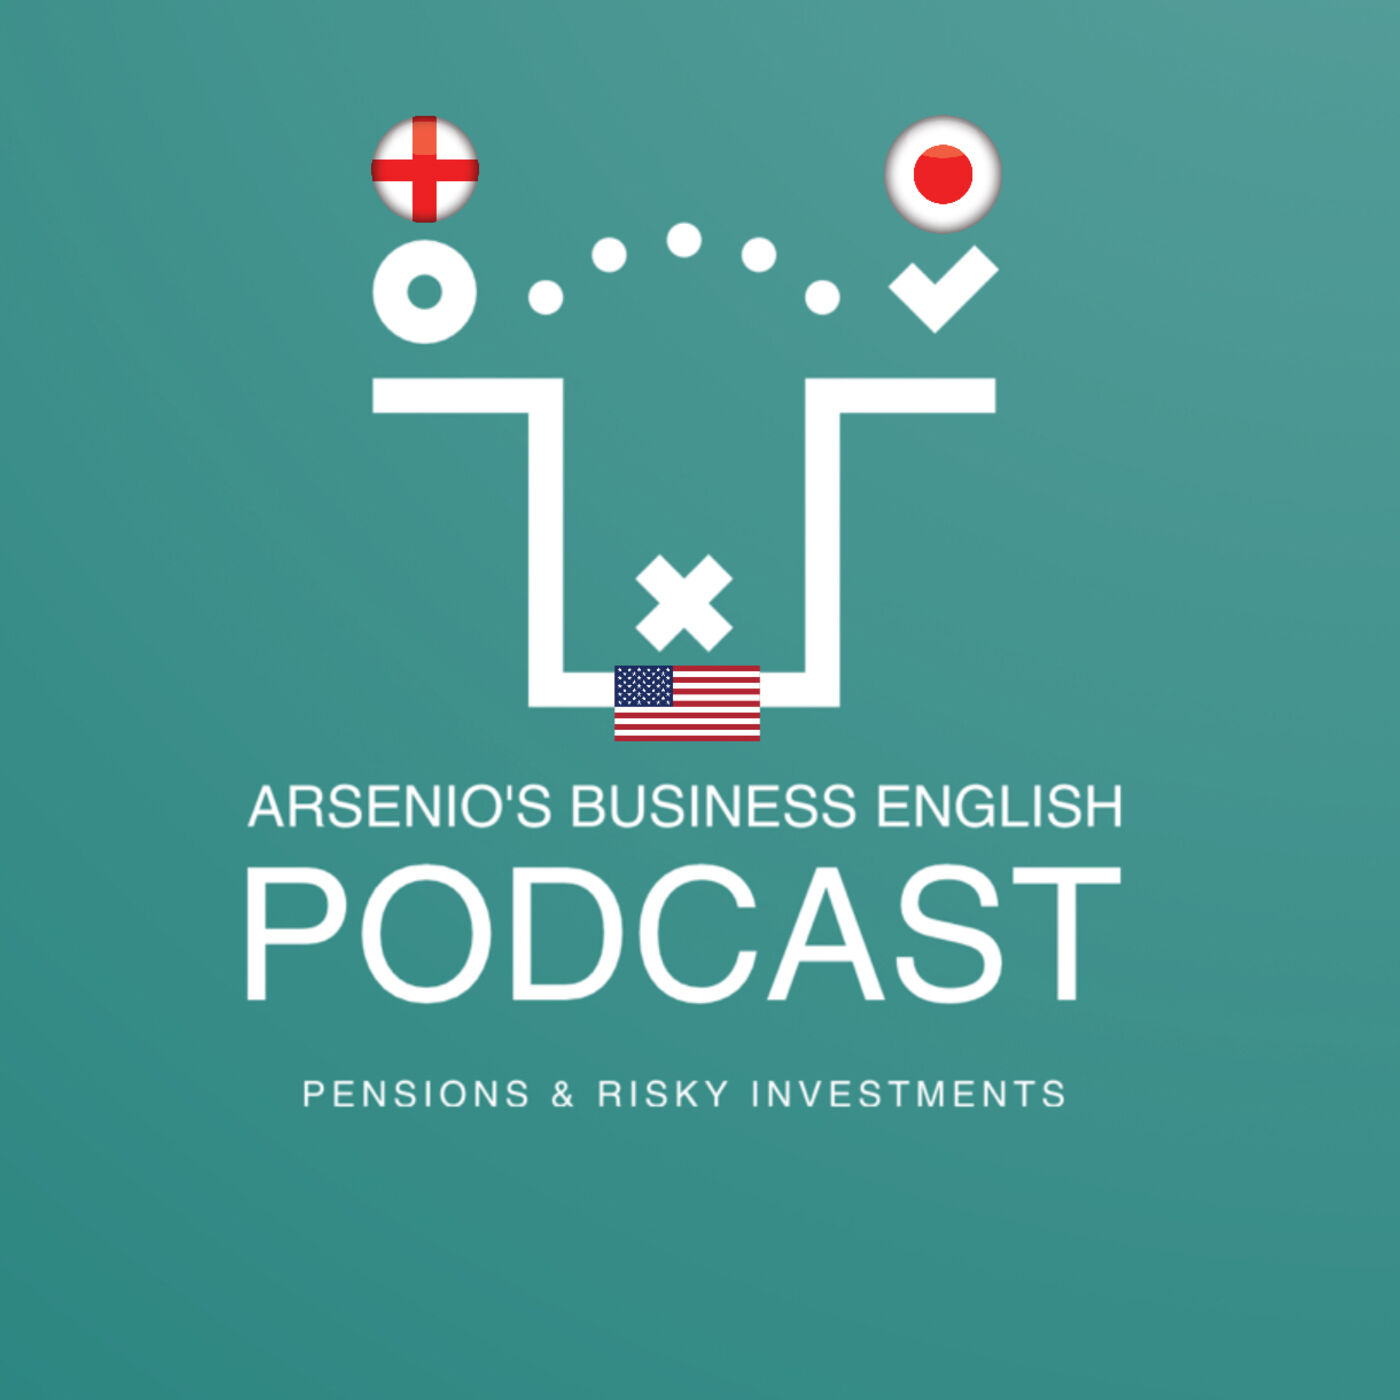 Arsenio's Business English Podcast | Investment | Best Types of Pensions & Risky Investments